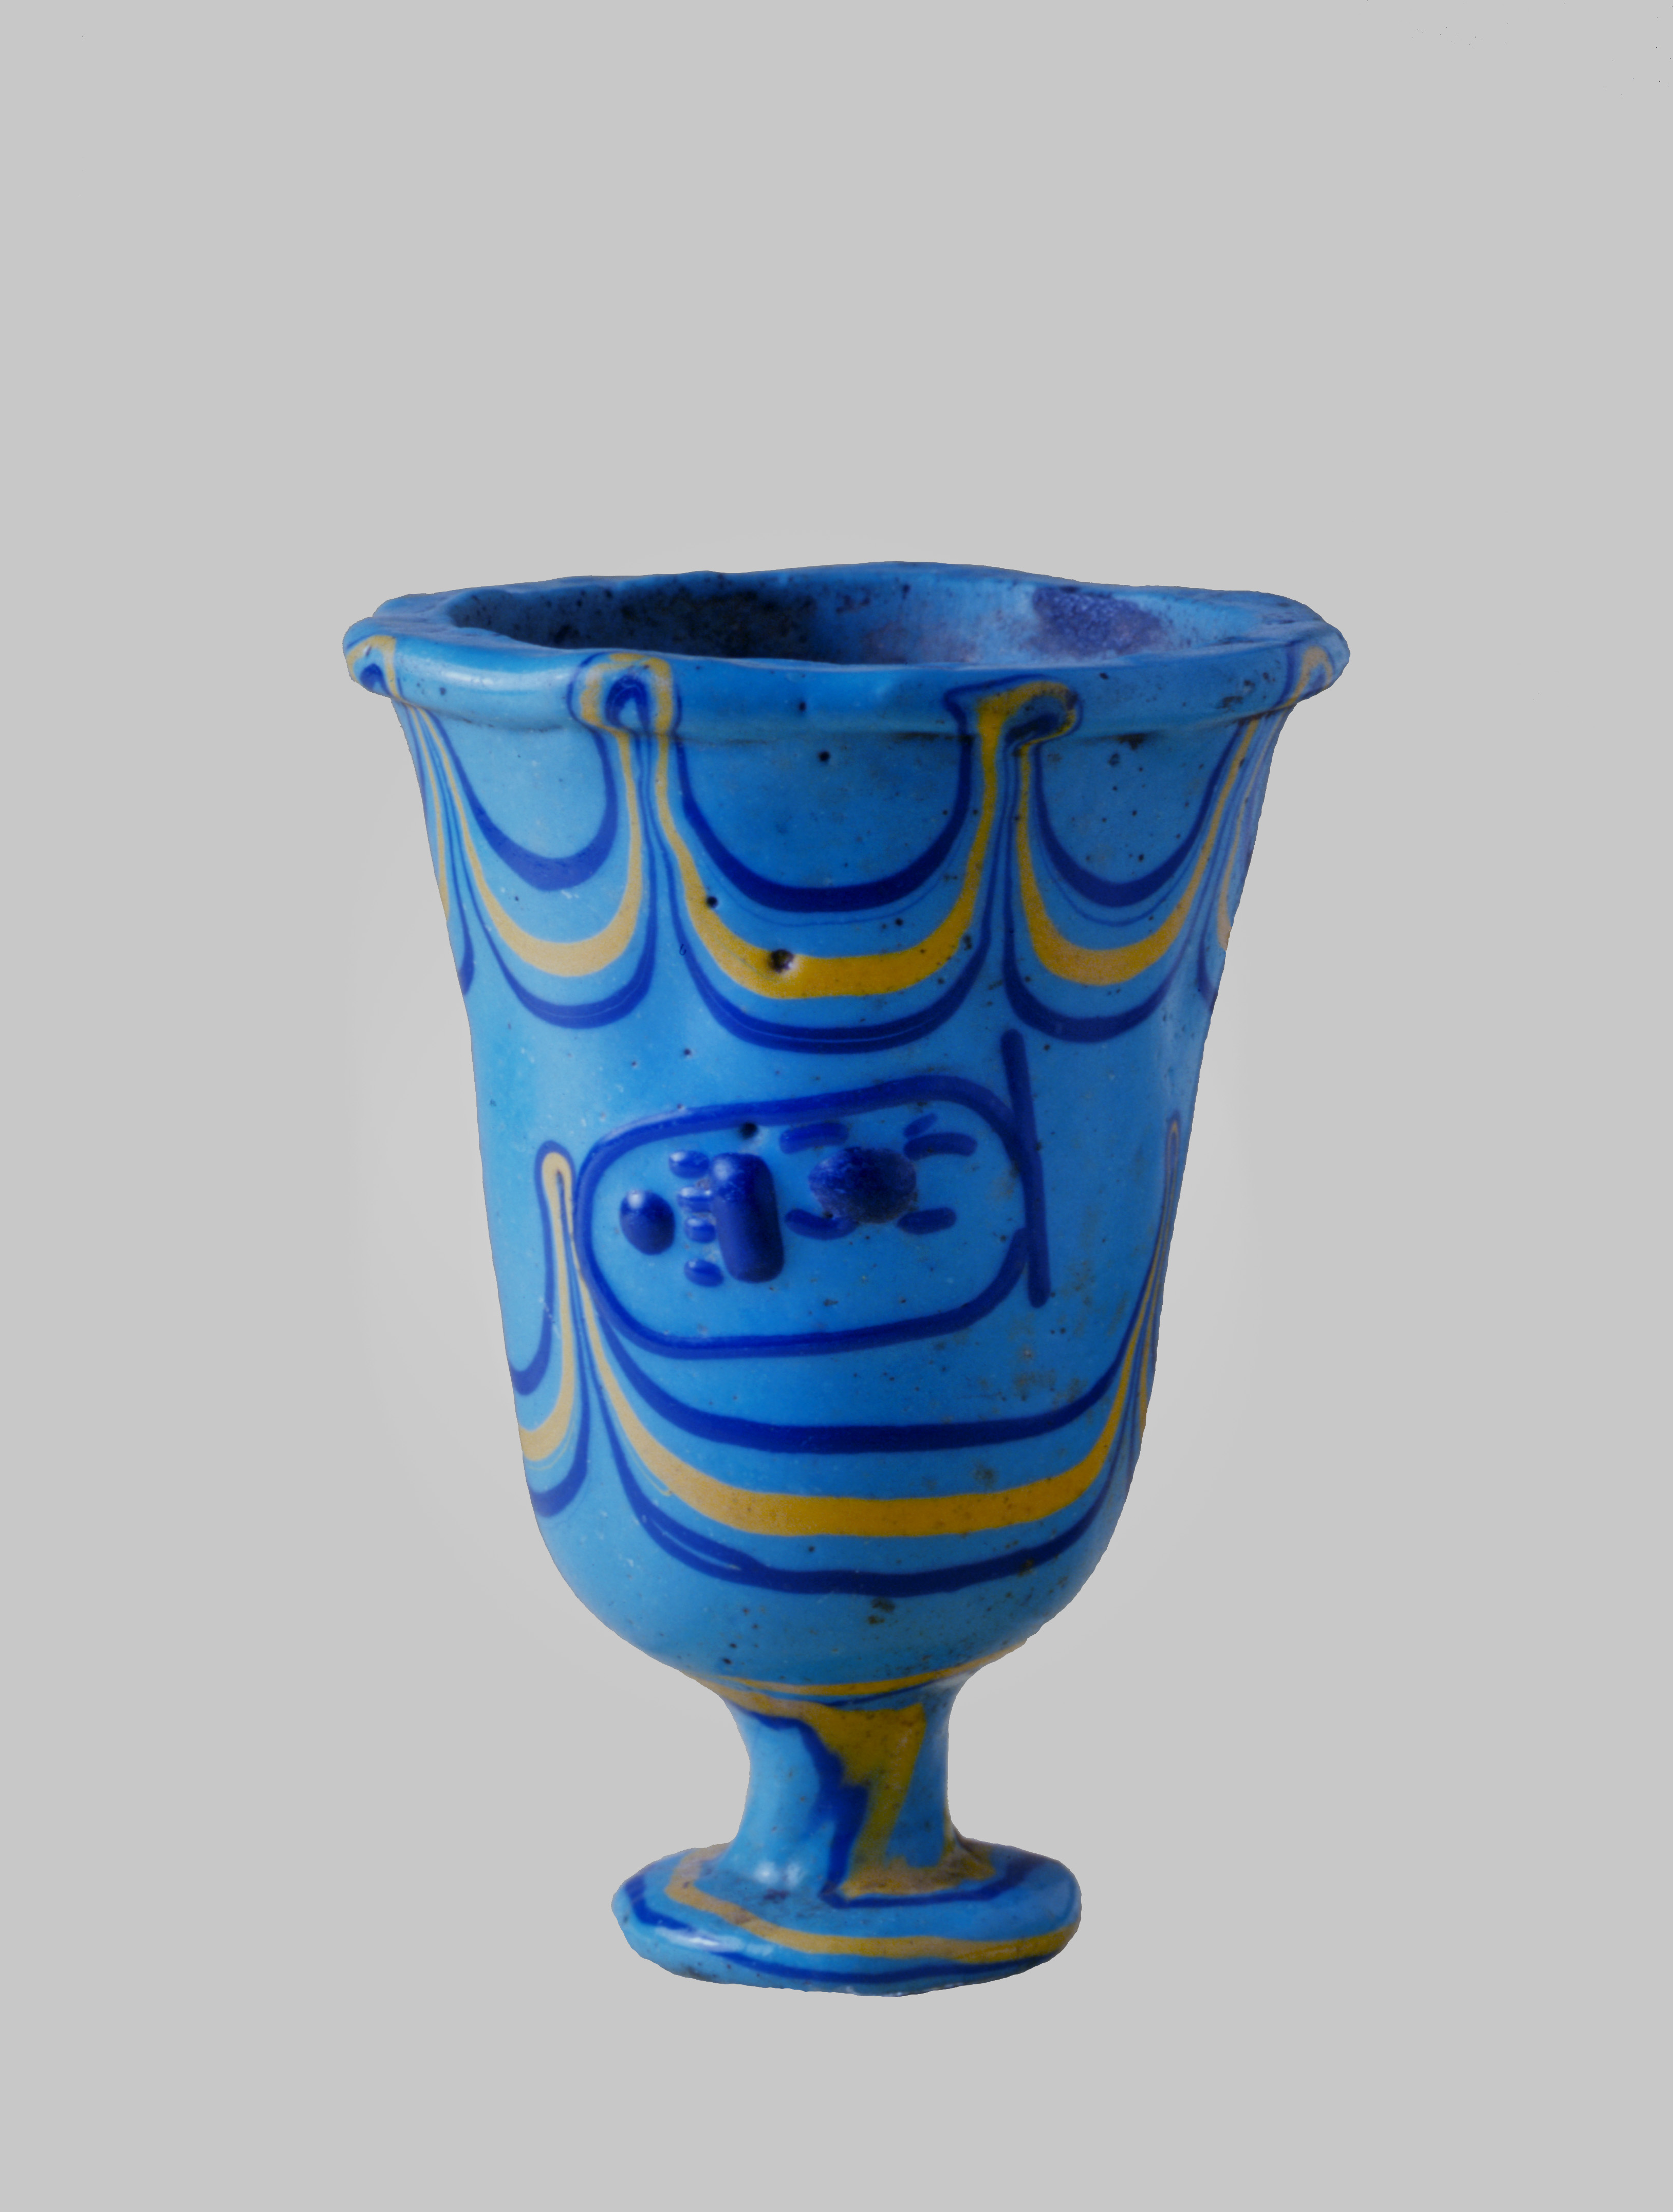 Fig. 8 Glass beaker, light blue glass, Thebes, New Empire, 18th Dynasty, reign of Thutmosis III., c.1450 BC.